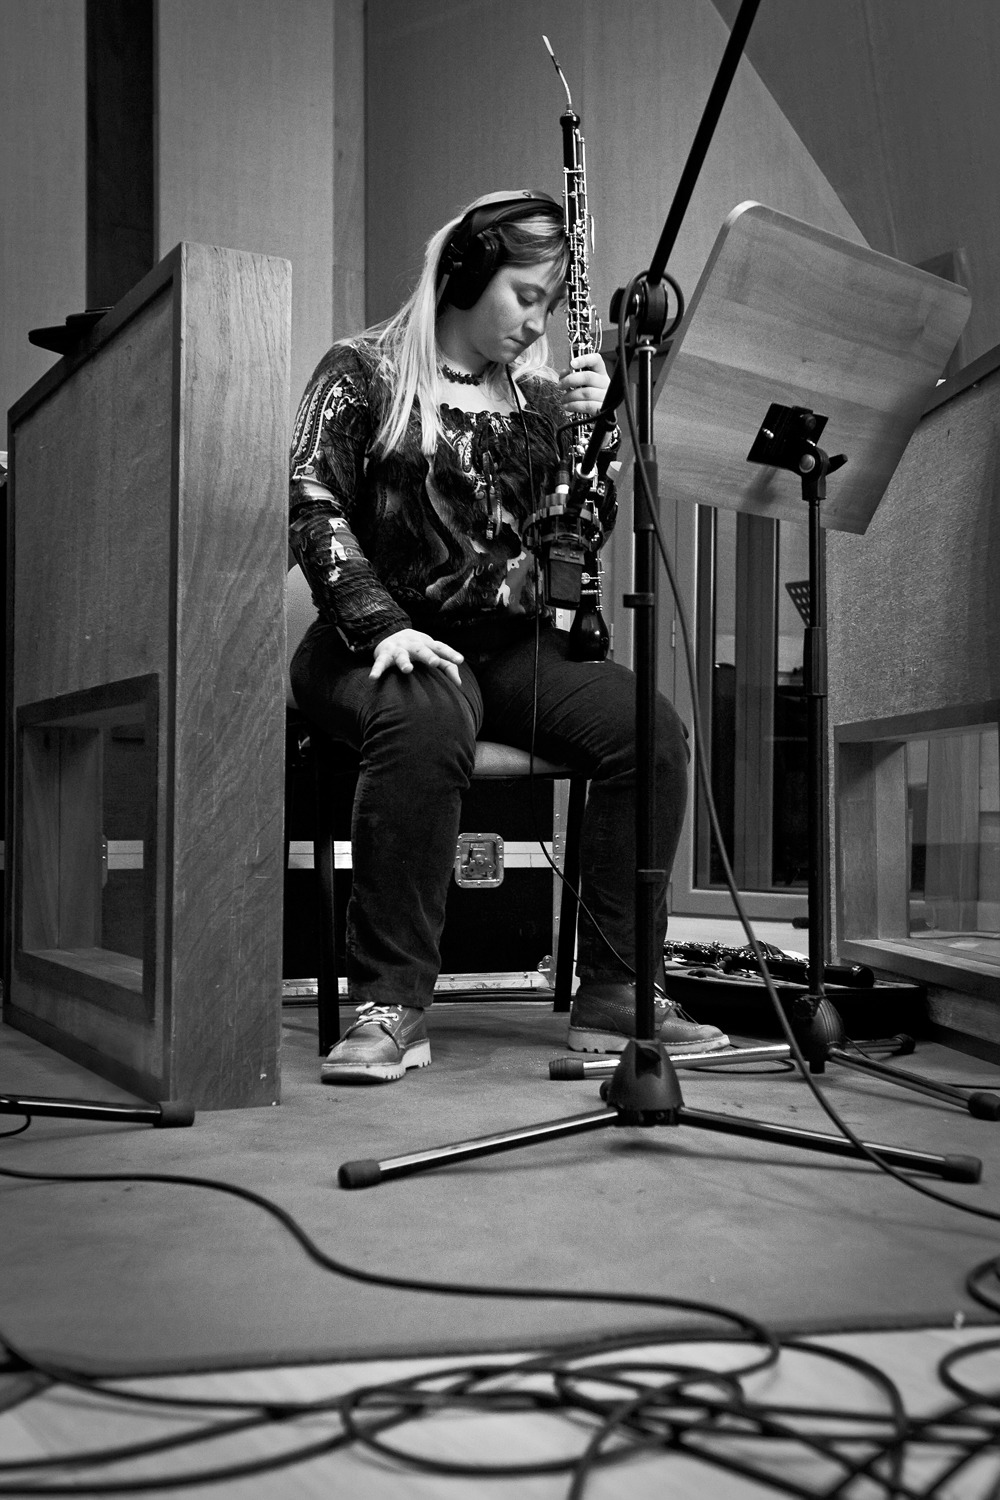 joana machado recording sessions 09042010 (5d) 048 bw.jpg